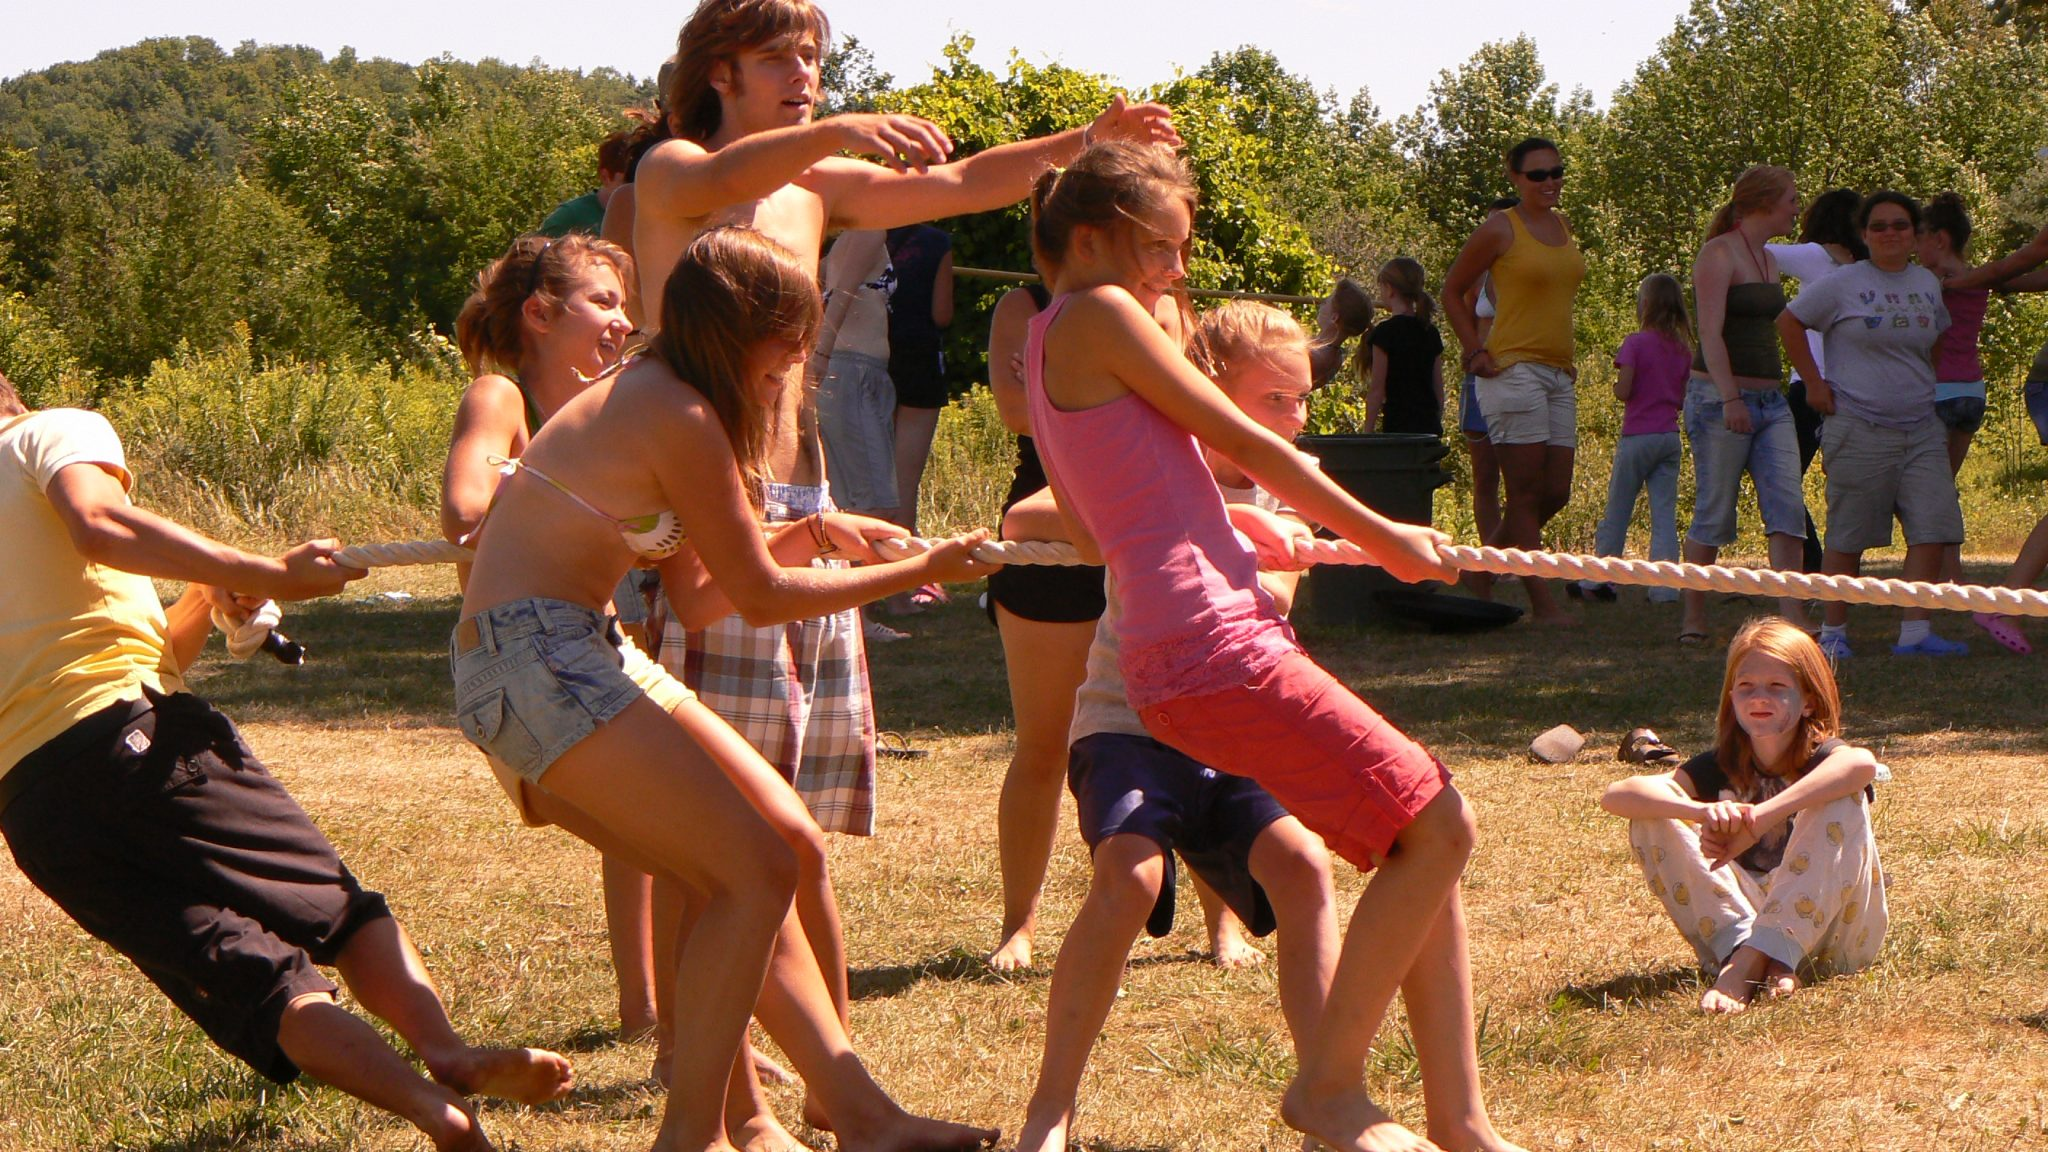 Group of campers playing tug of war being encouraged by their counselor